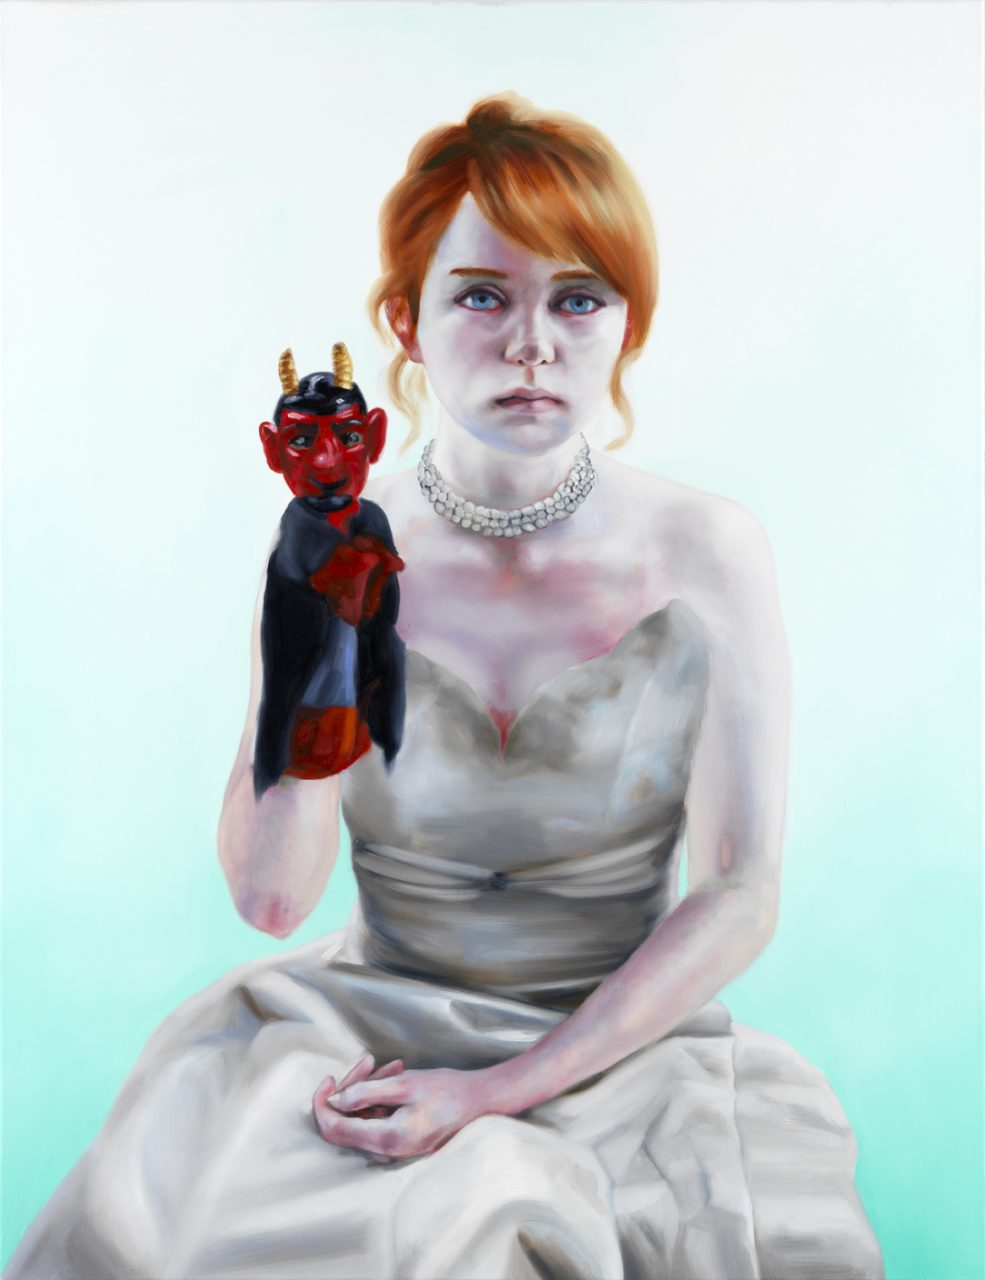 Die Braut, 2012 oil on canvas, 130 x 85 cm